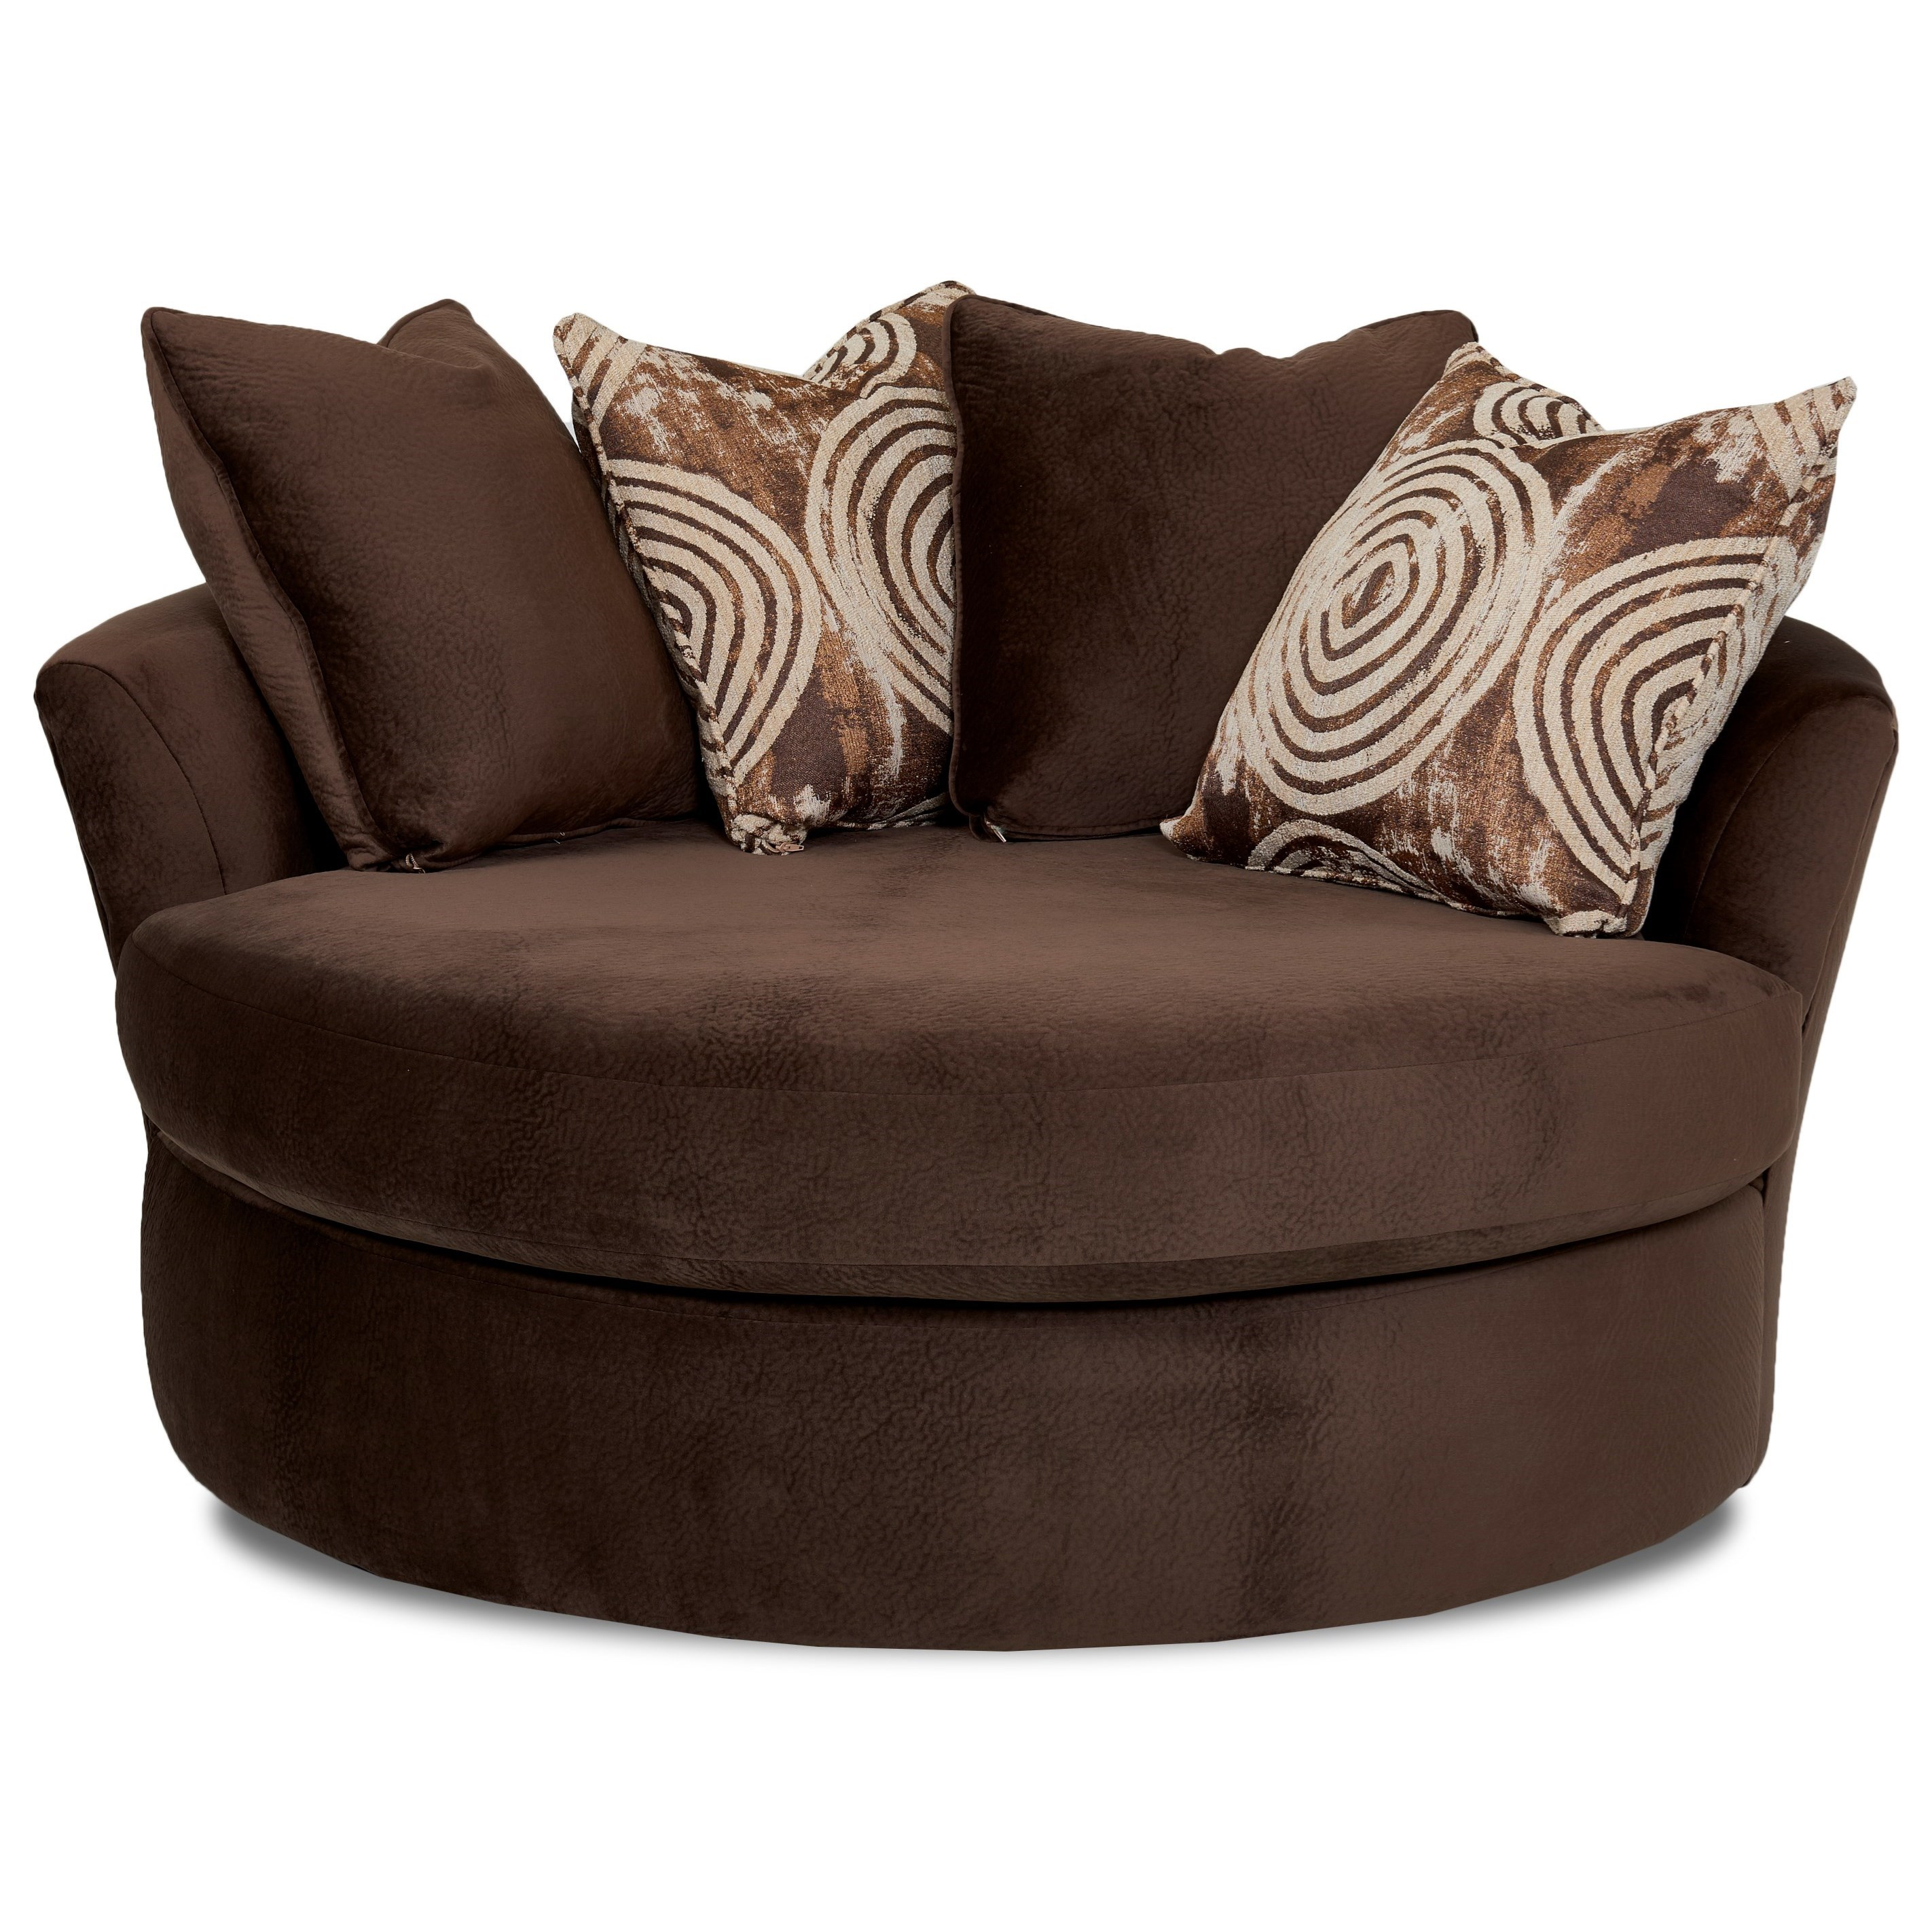 Athena Oversized Swivel Chair With Scattered Back Pillows